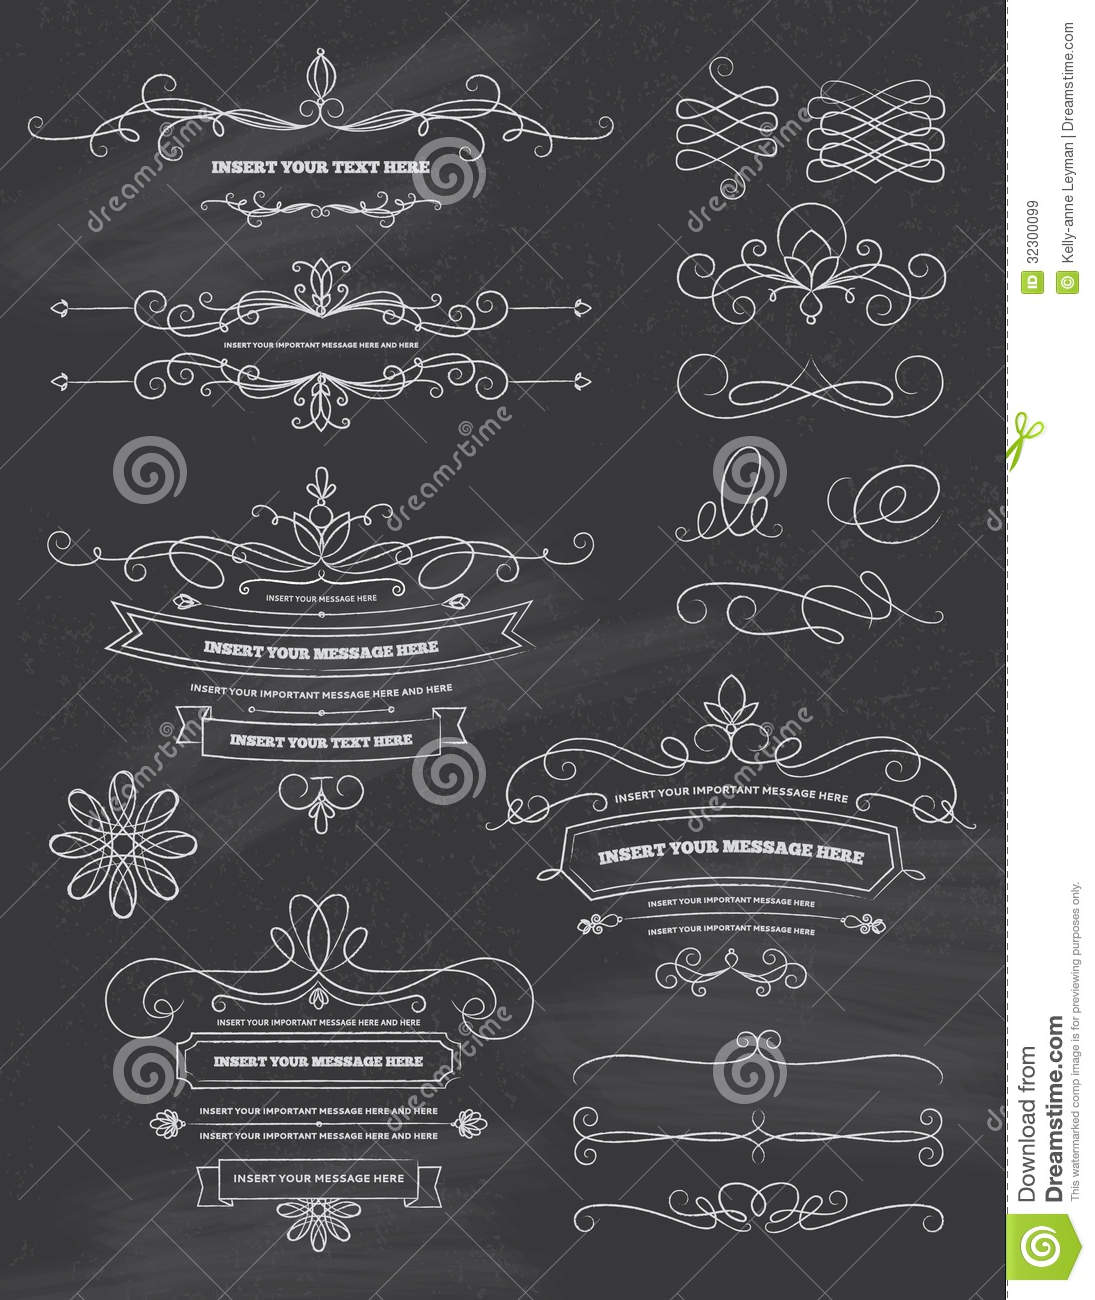 Vintage Calligraphy Chalkboard Design Elements Royalty